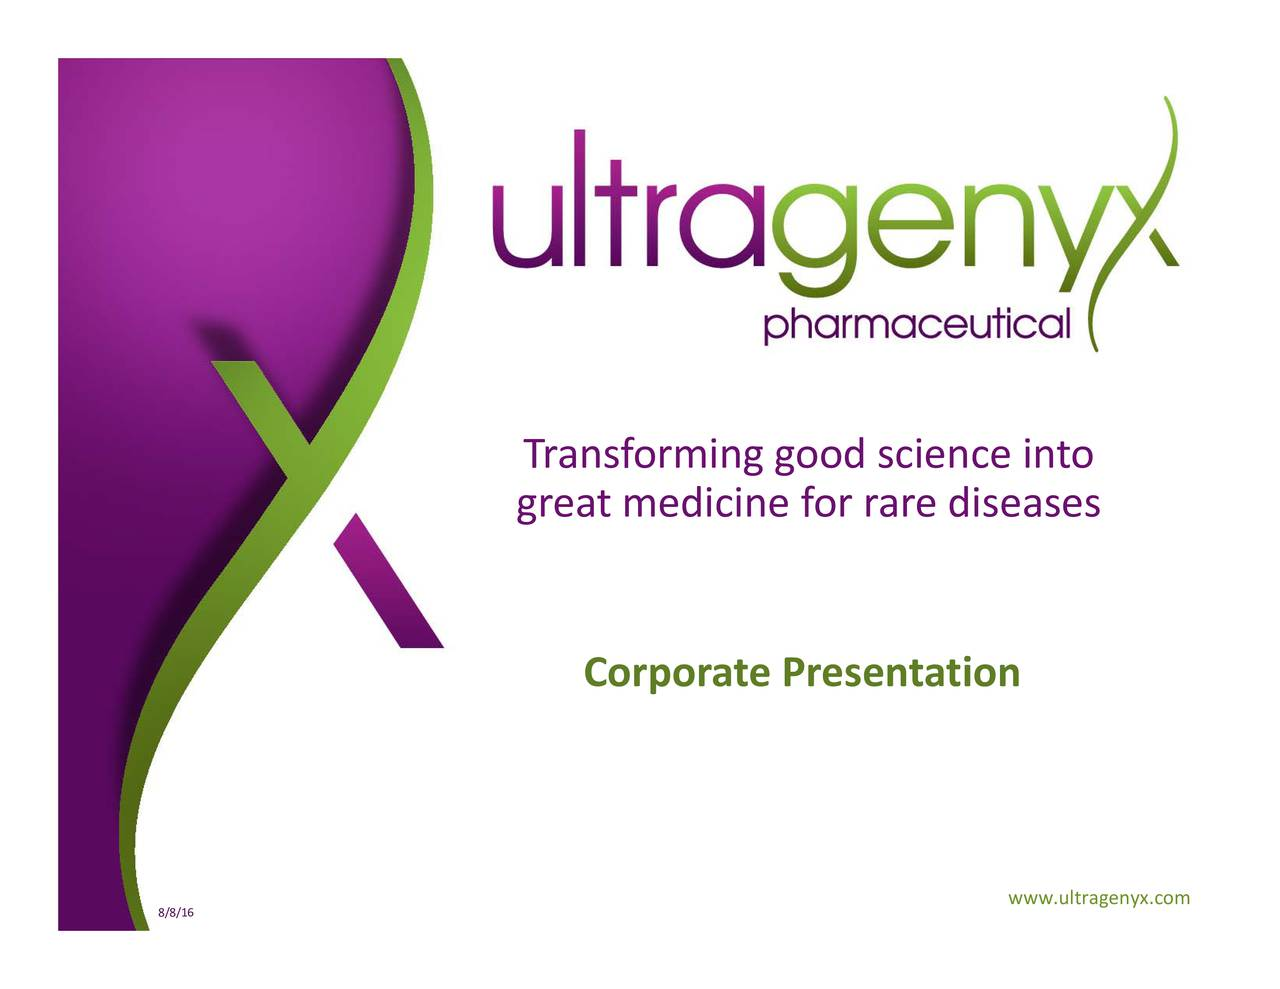 nto www.ultragenyx.com science are diseases or ood resentation medicine Corporate Tragreatming 8/8/16